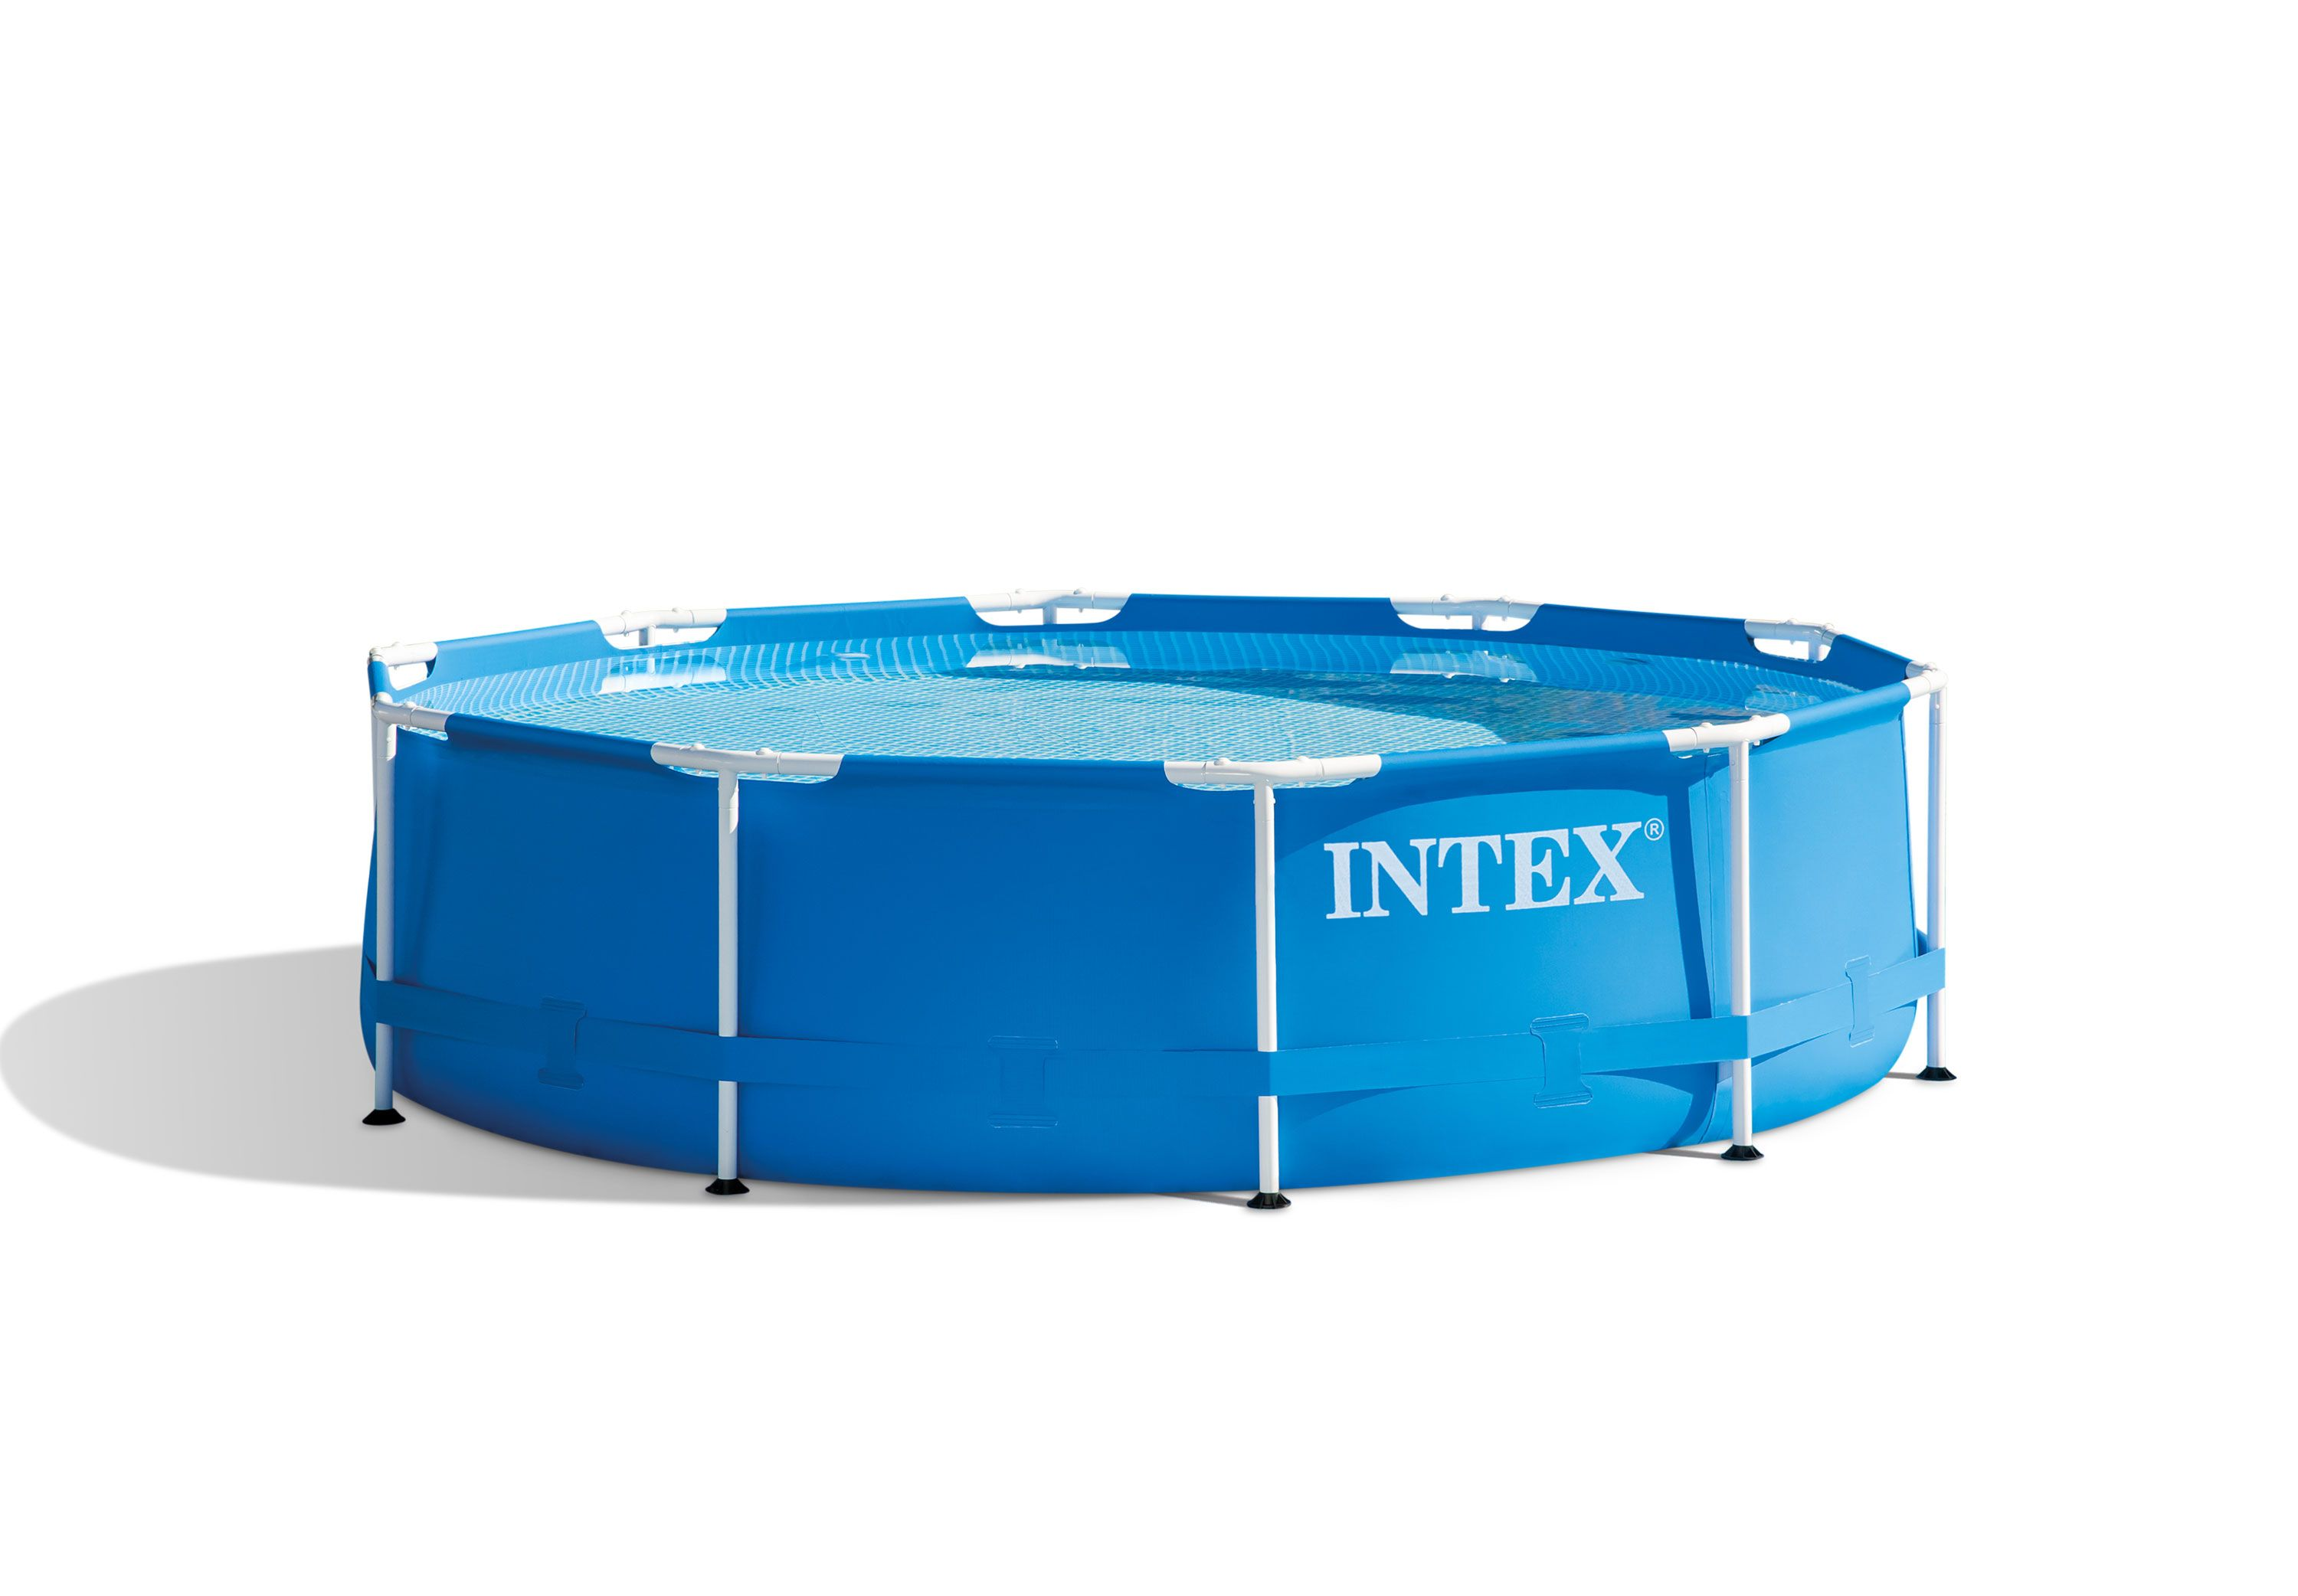 The Intex Ultra Frame 14 Ft X 42 In Round Pool Set With 1 000 Gal